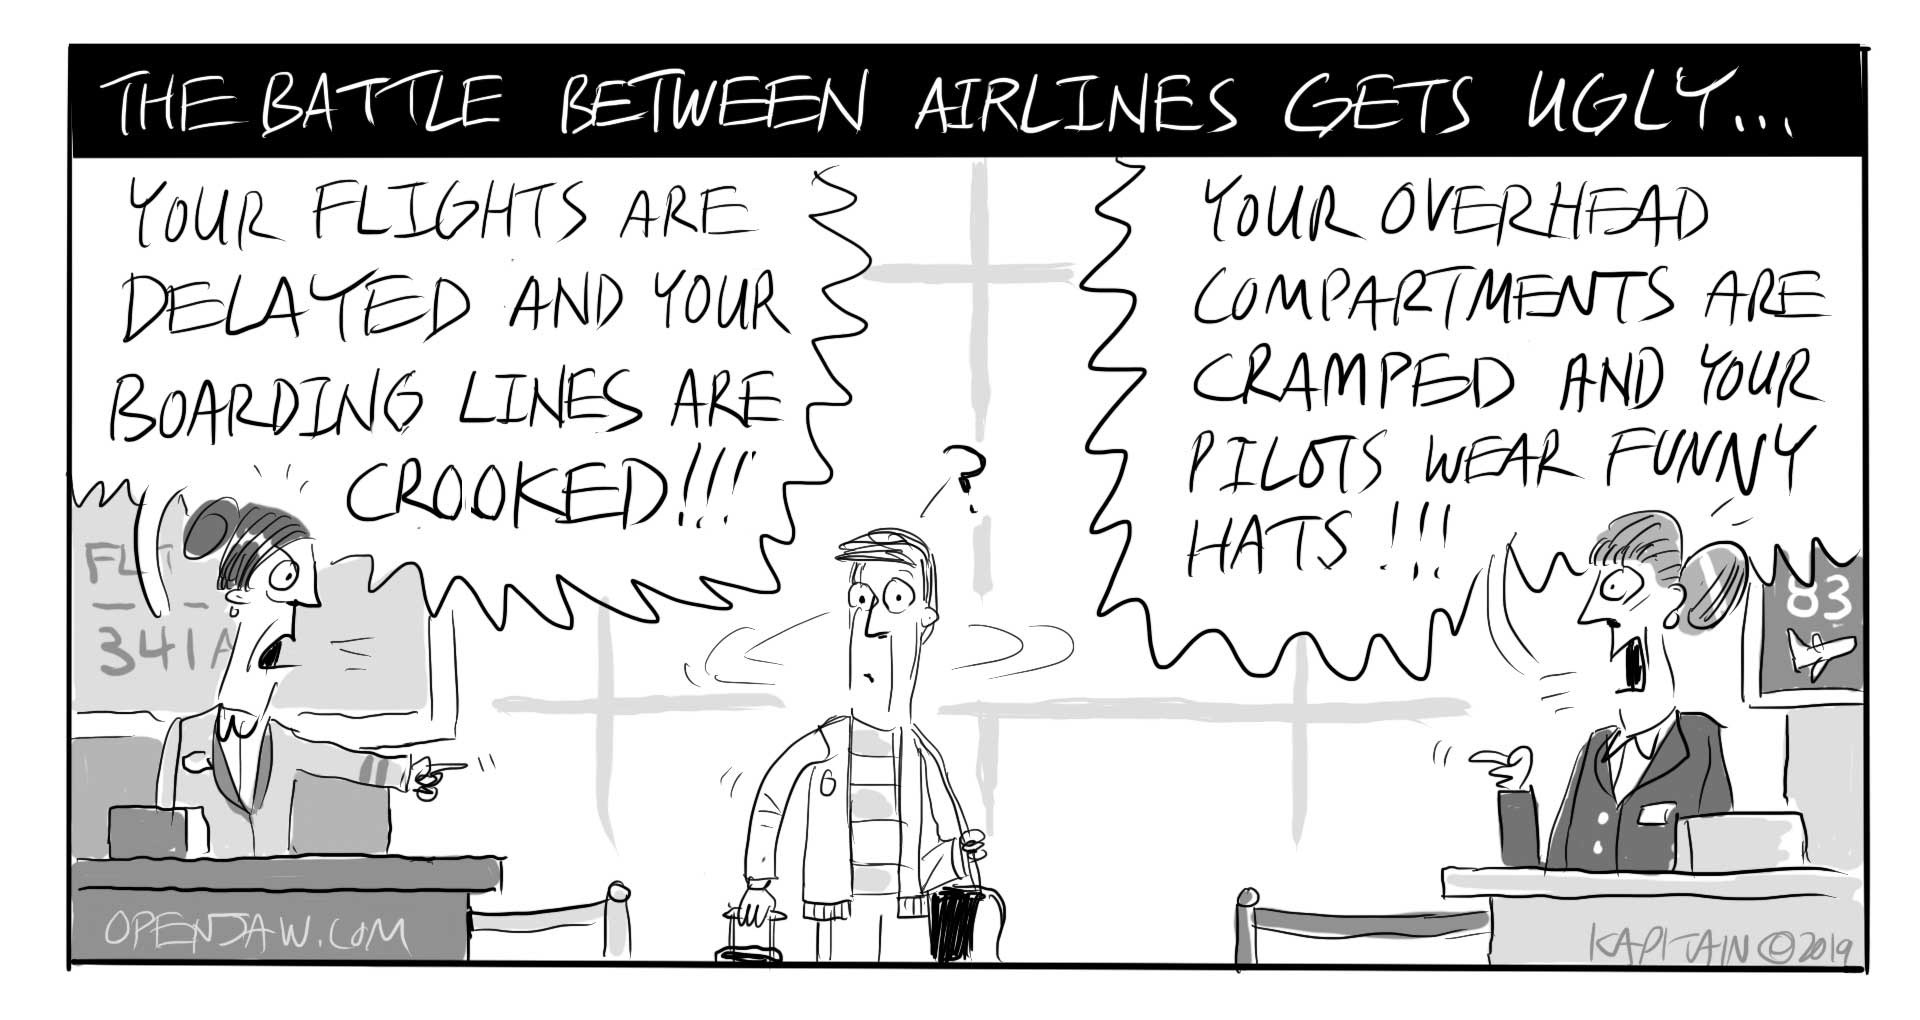 The Battle Of The Airlines